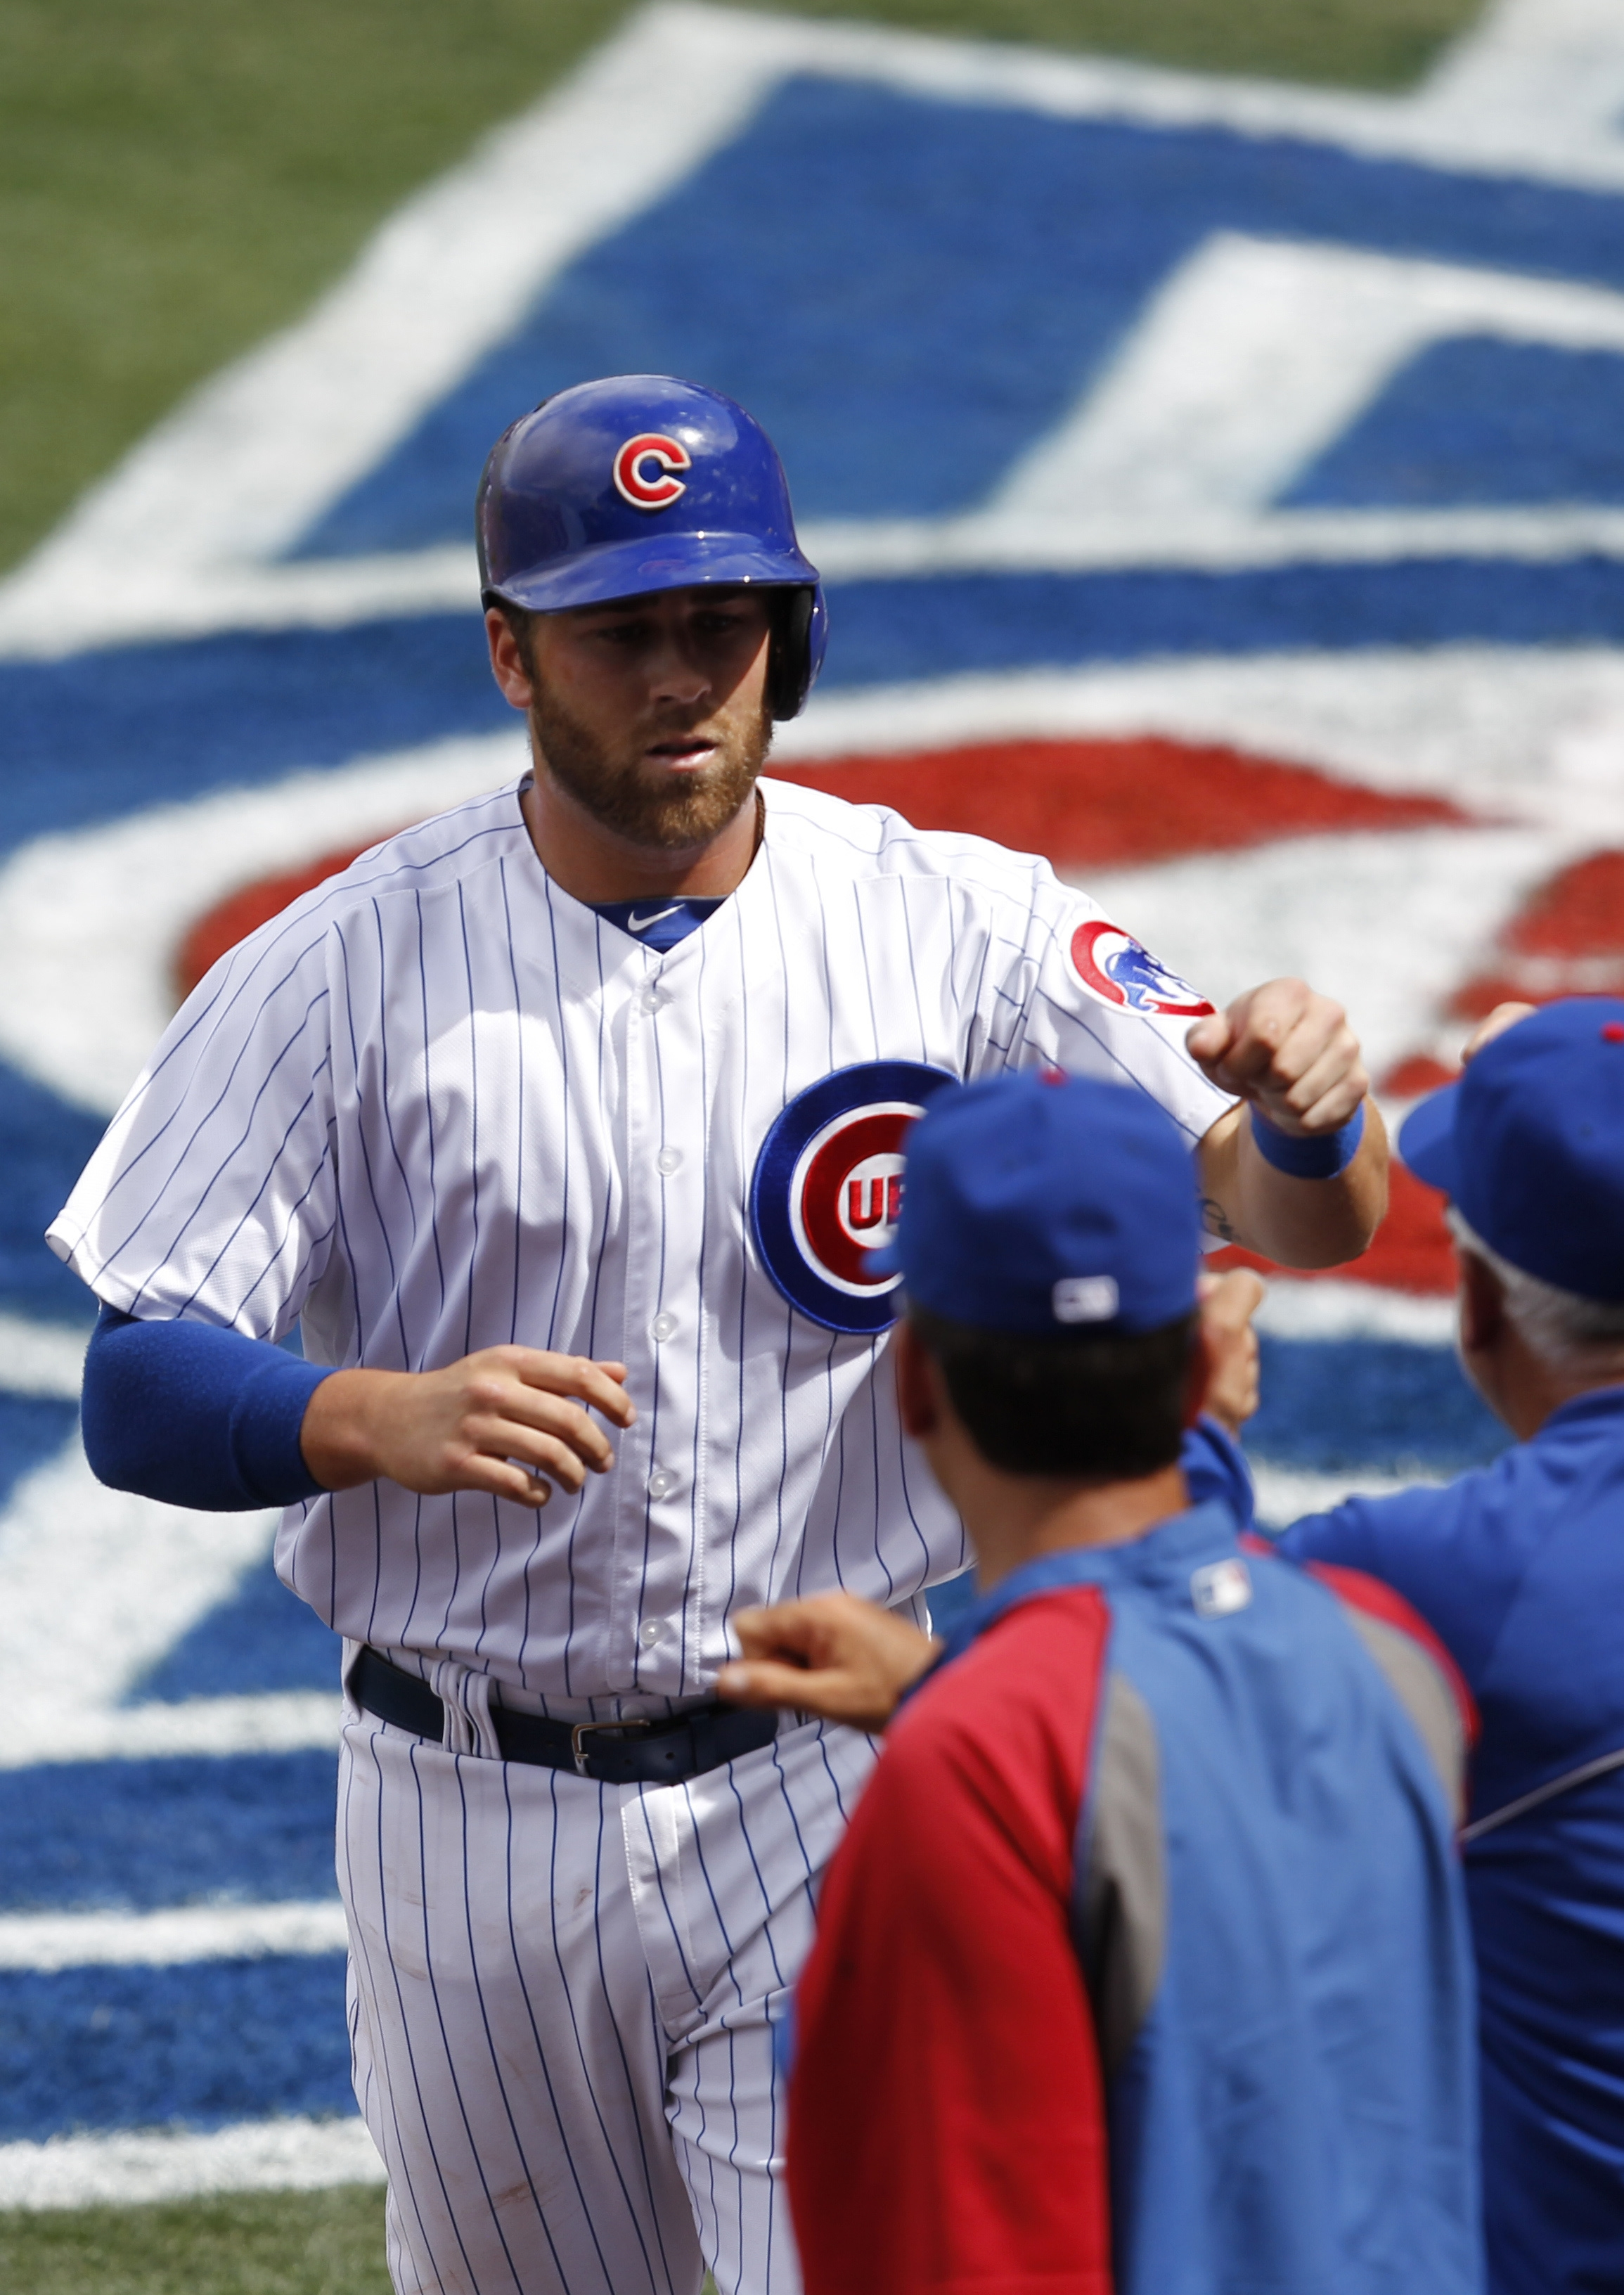 Mike Olt of the Chicago Cubs could be due for a breakout year, according to PECOTA projections from Baseball Prospectus.